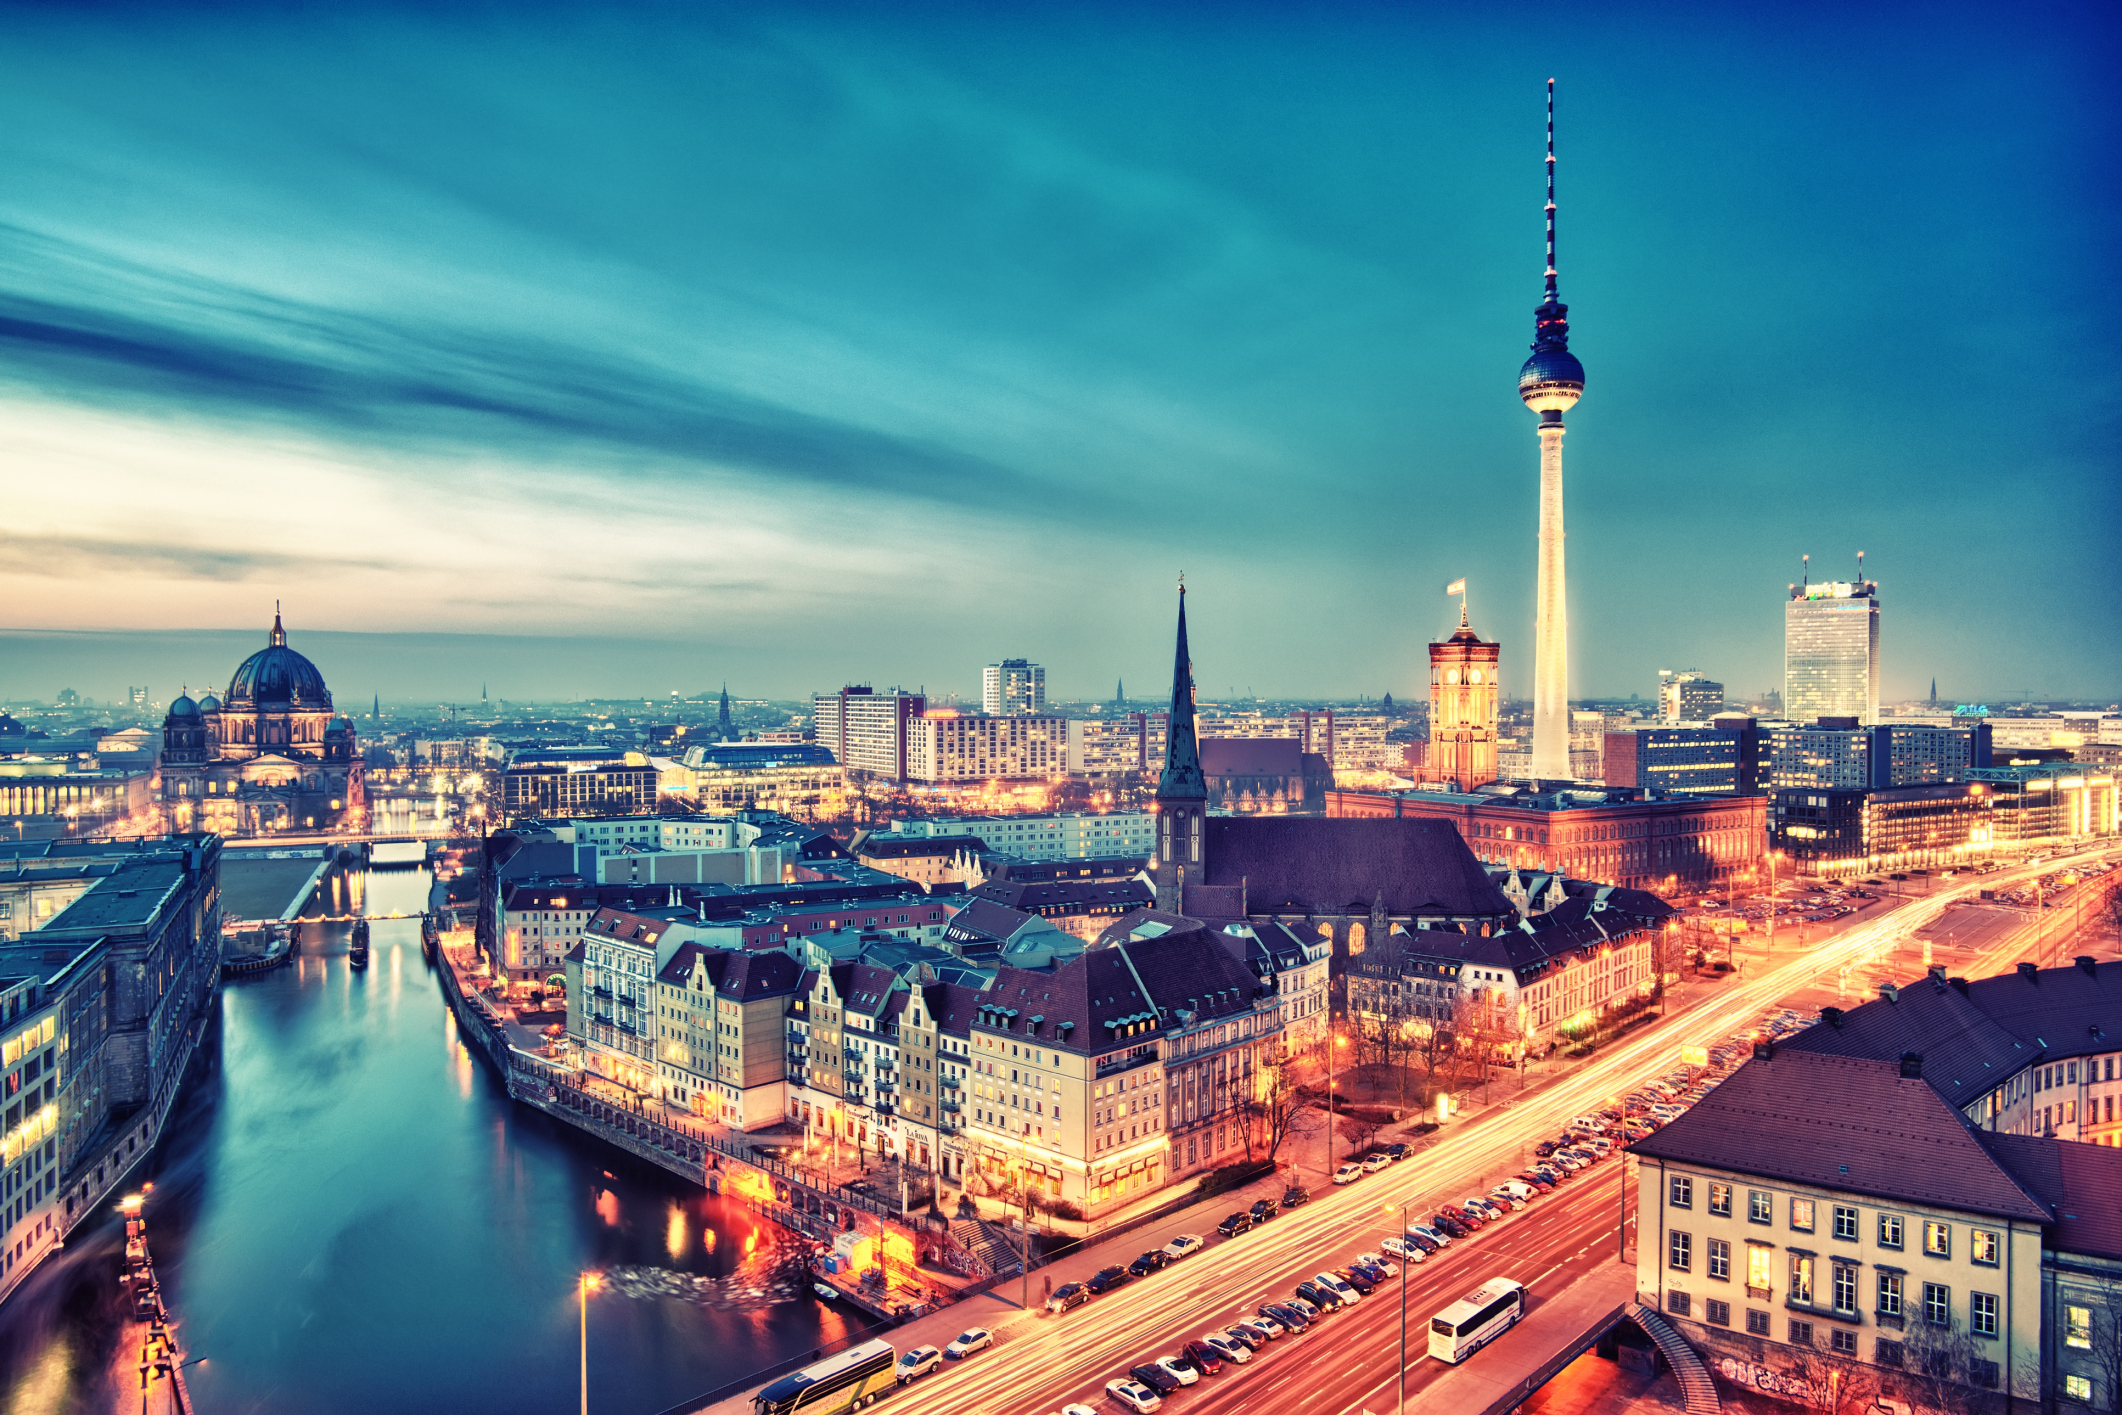 TechCrunch is back in Berlin January 15th